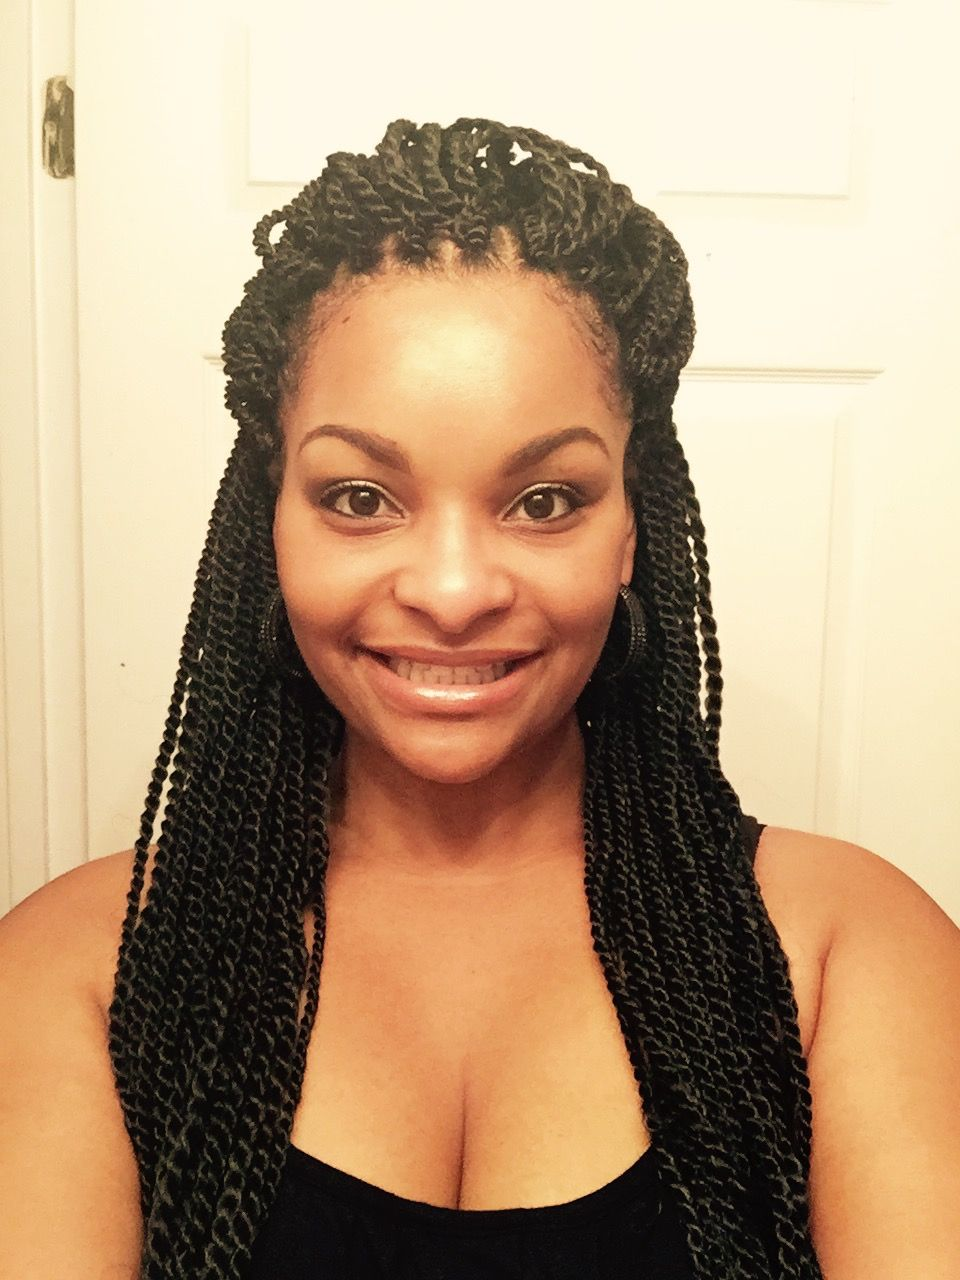 senegalese twists hairstyle fade haircut. Black Bedroom Furniture Sets. Home Design Ideas